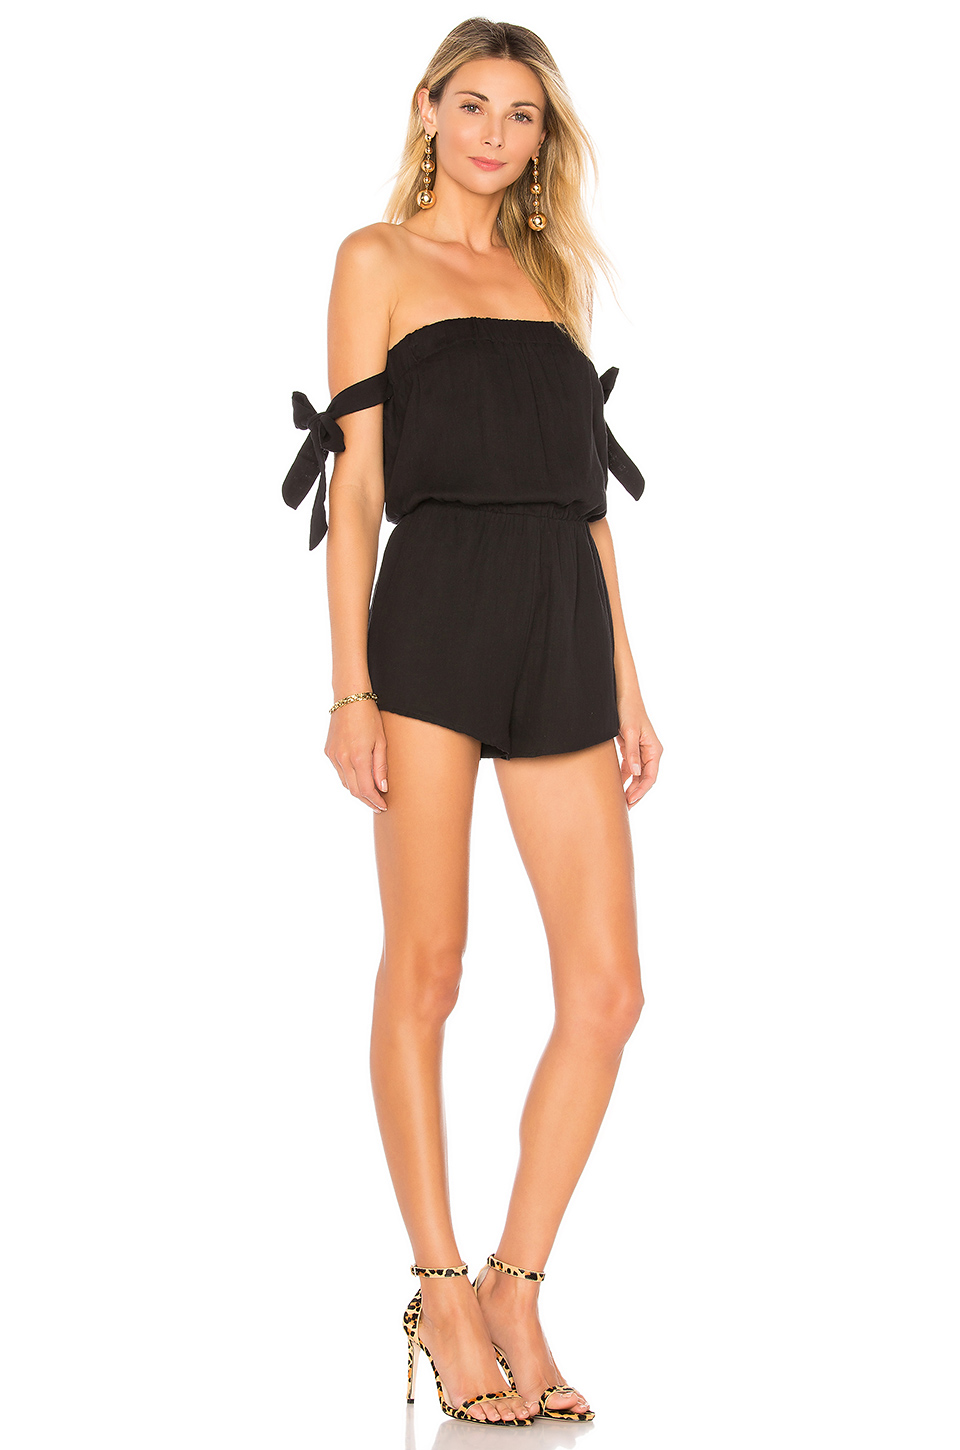 54ce4b0c020 Buy Original by the way. Ora Off Shoulder Romper at Indonesia ...